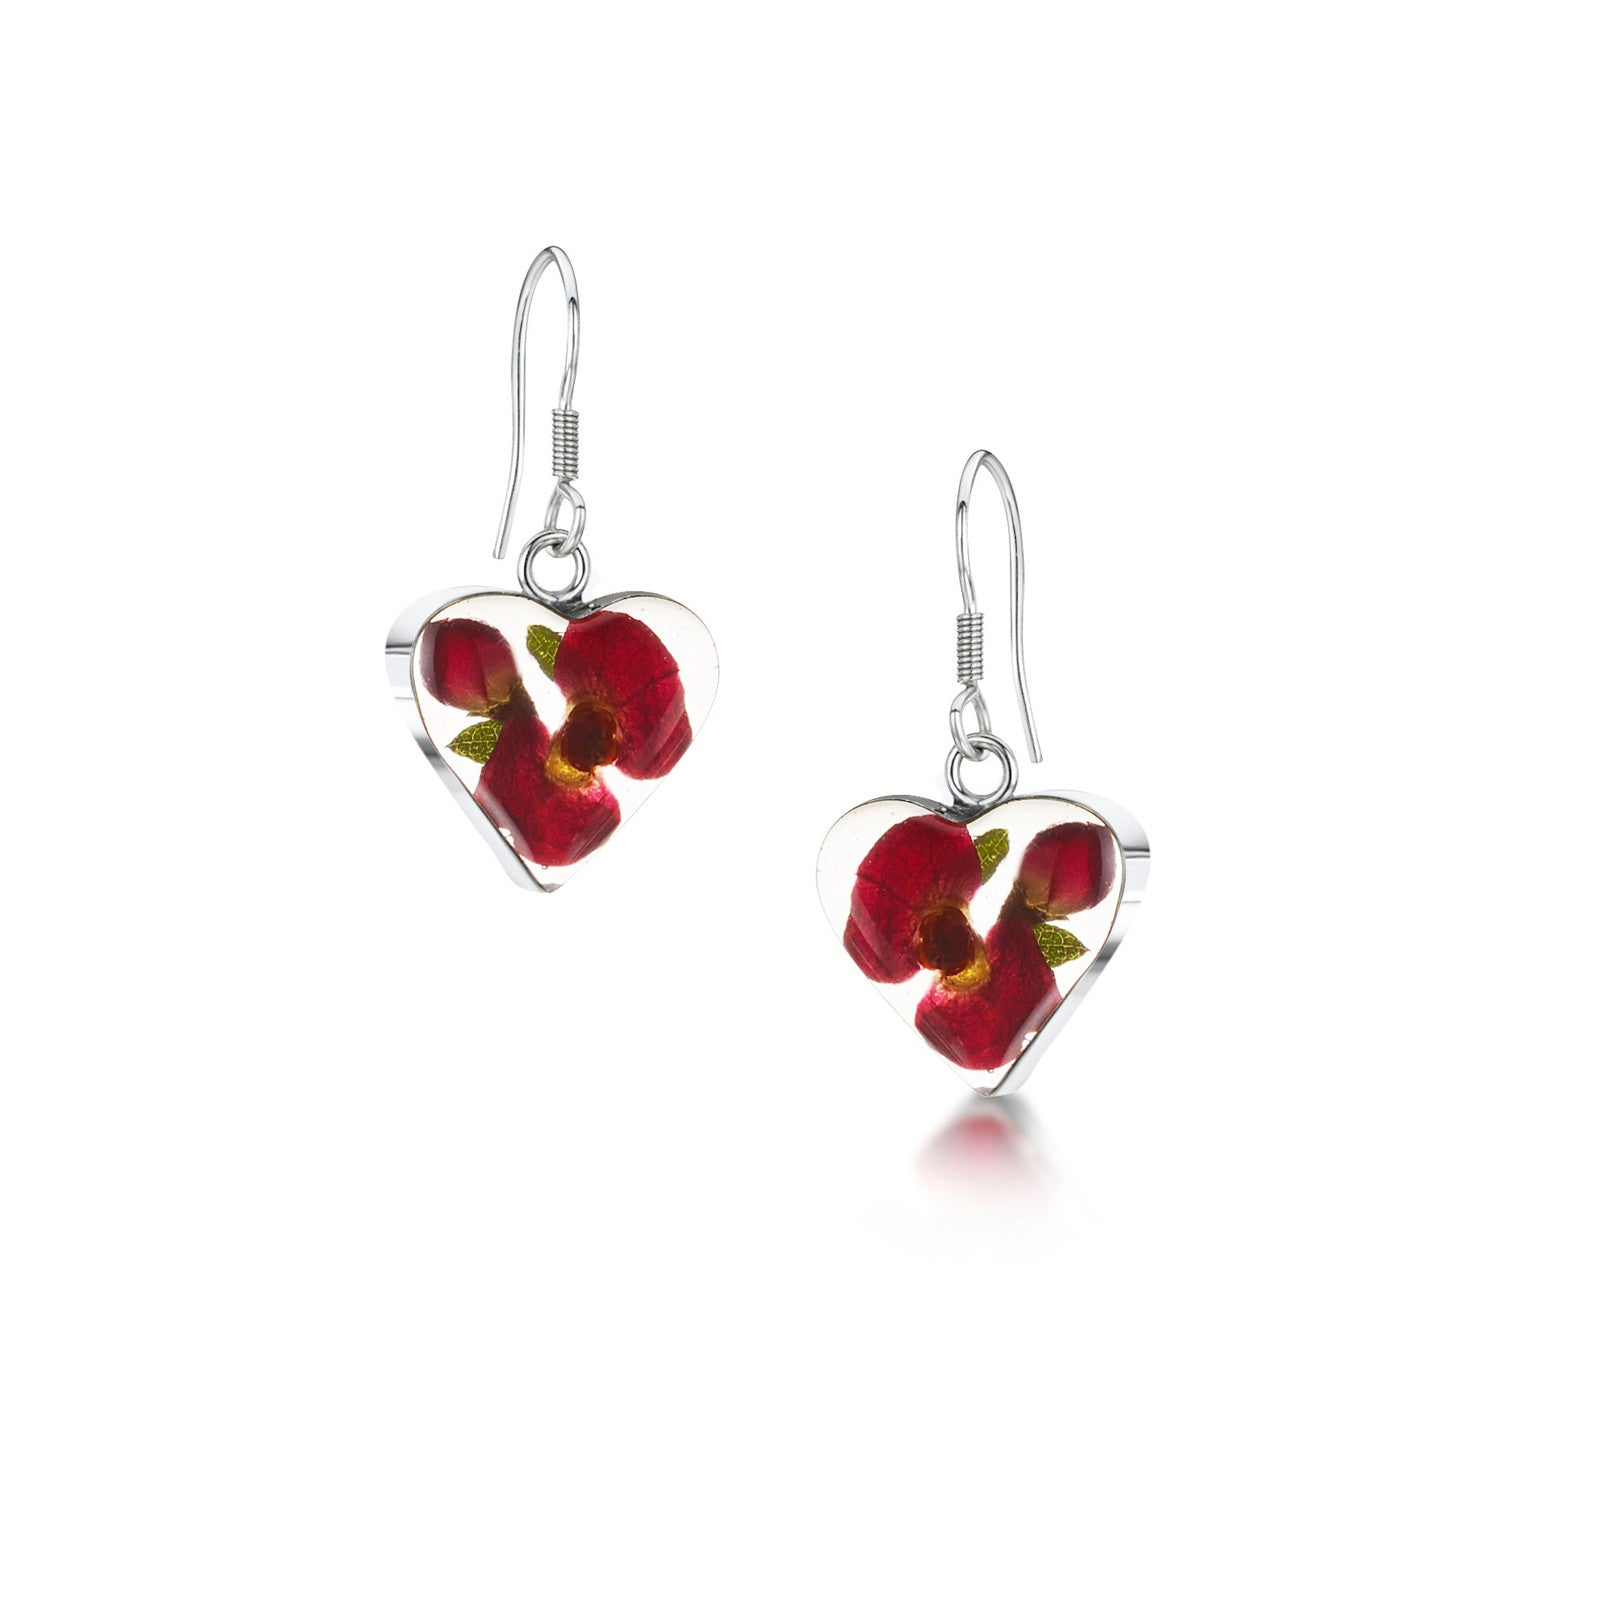 Silver Drop Earrings - Poppy/Rose - Heart